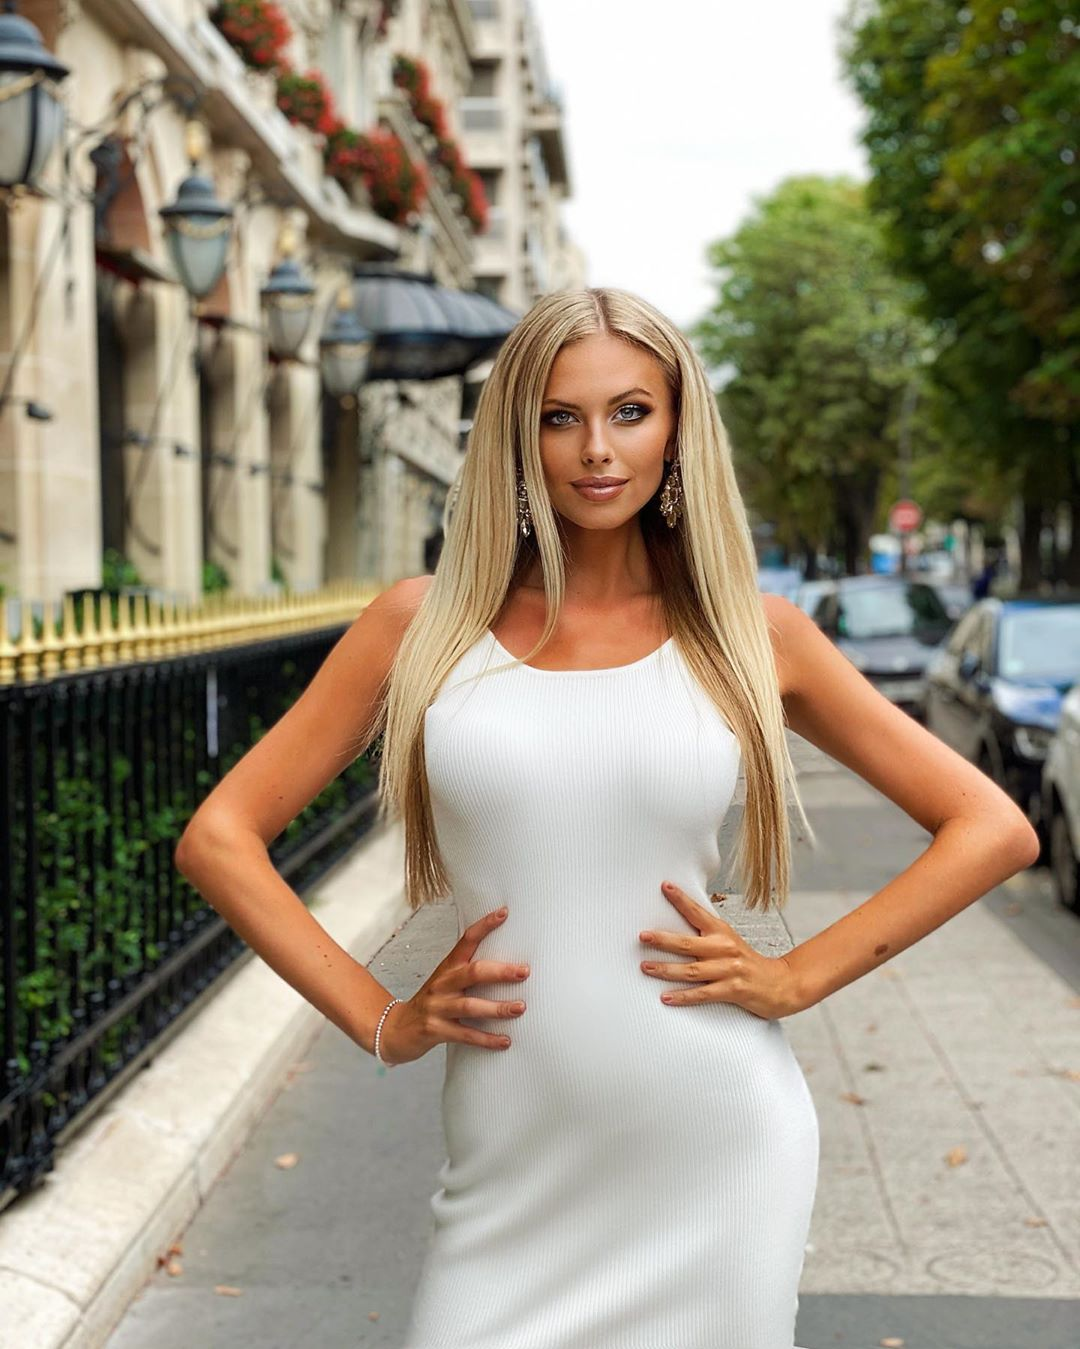 Aneta-Mlcakova-Wallpapers-Insta-Fit-Bio-3